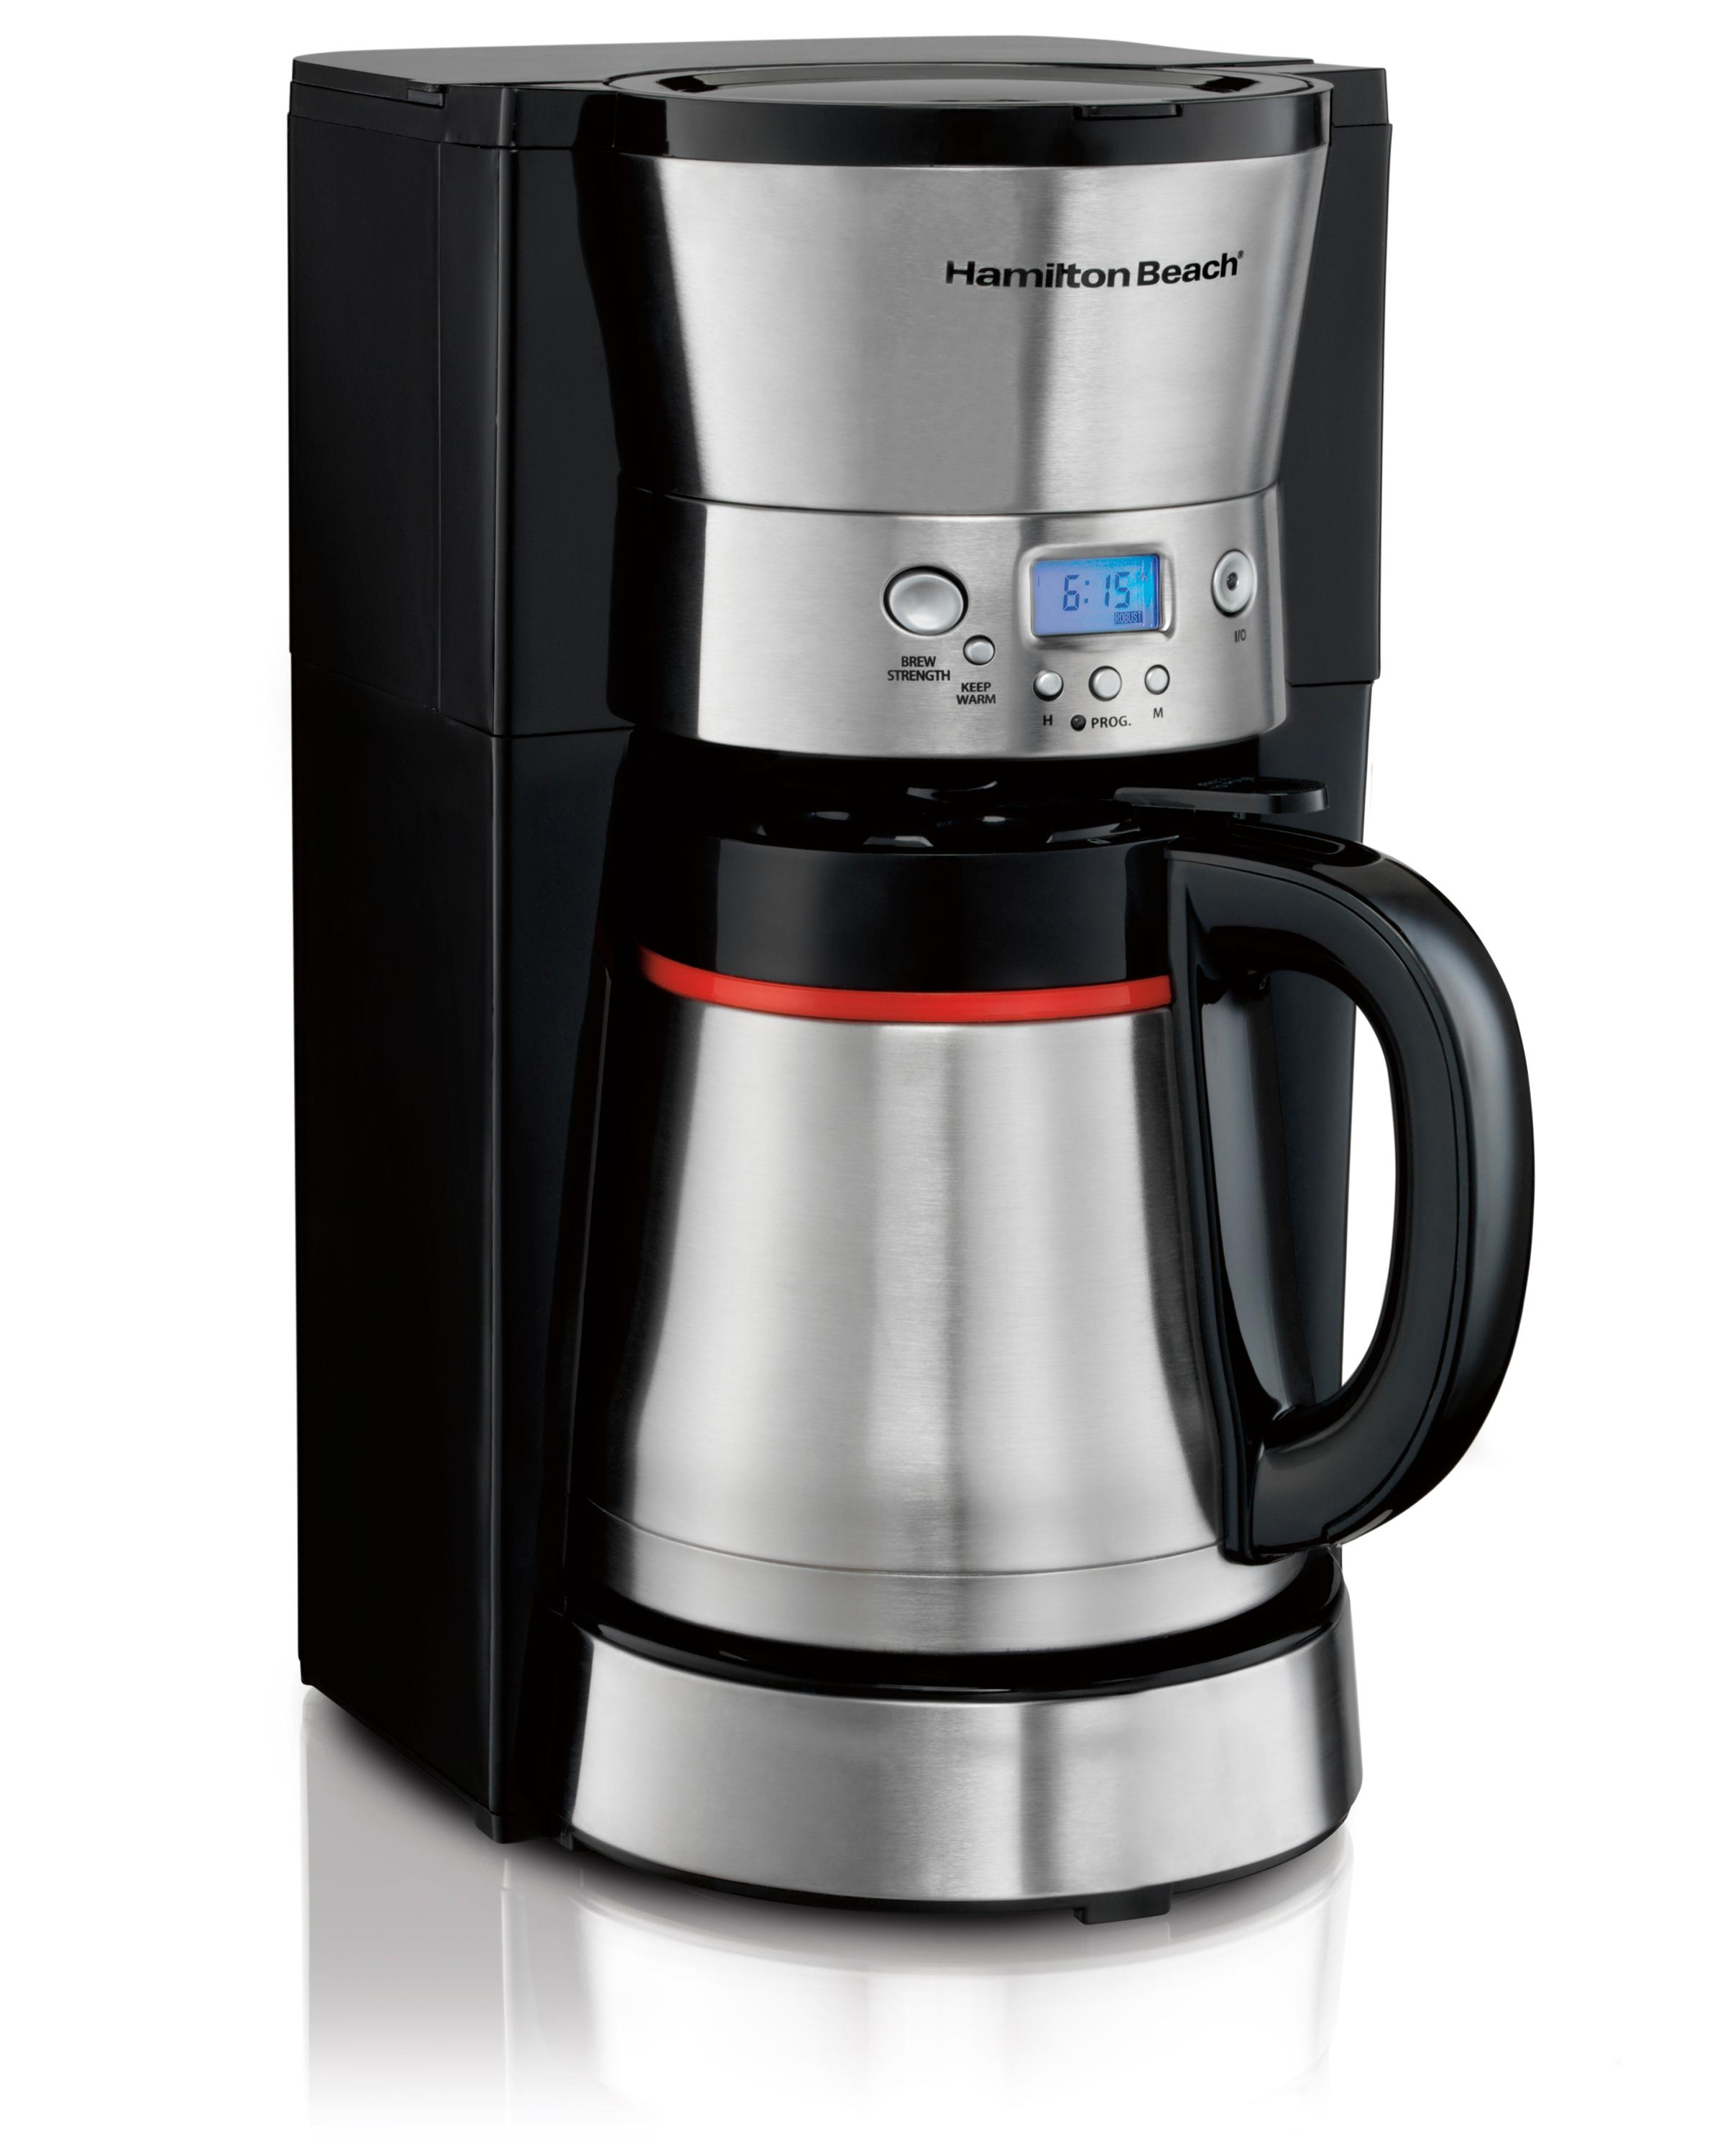 Amazon.com: Hamilton Beach 46896A 10 Cup Coffee Maker with ...